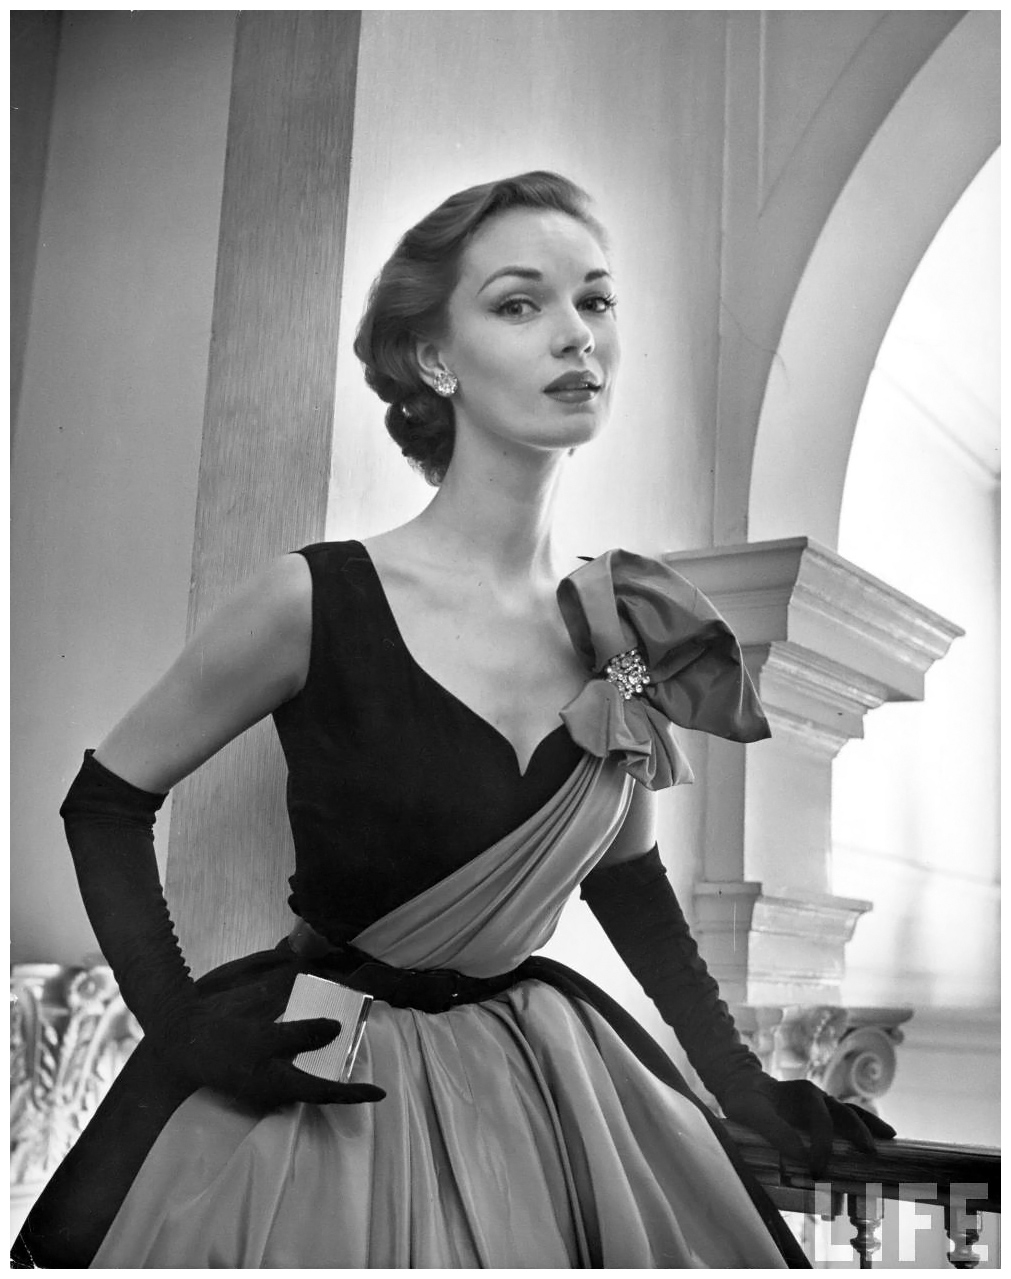 1951 NYC A woman modelling a short ball gown | © Pleasurephoto Room